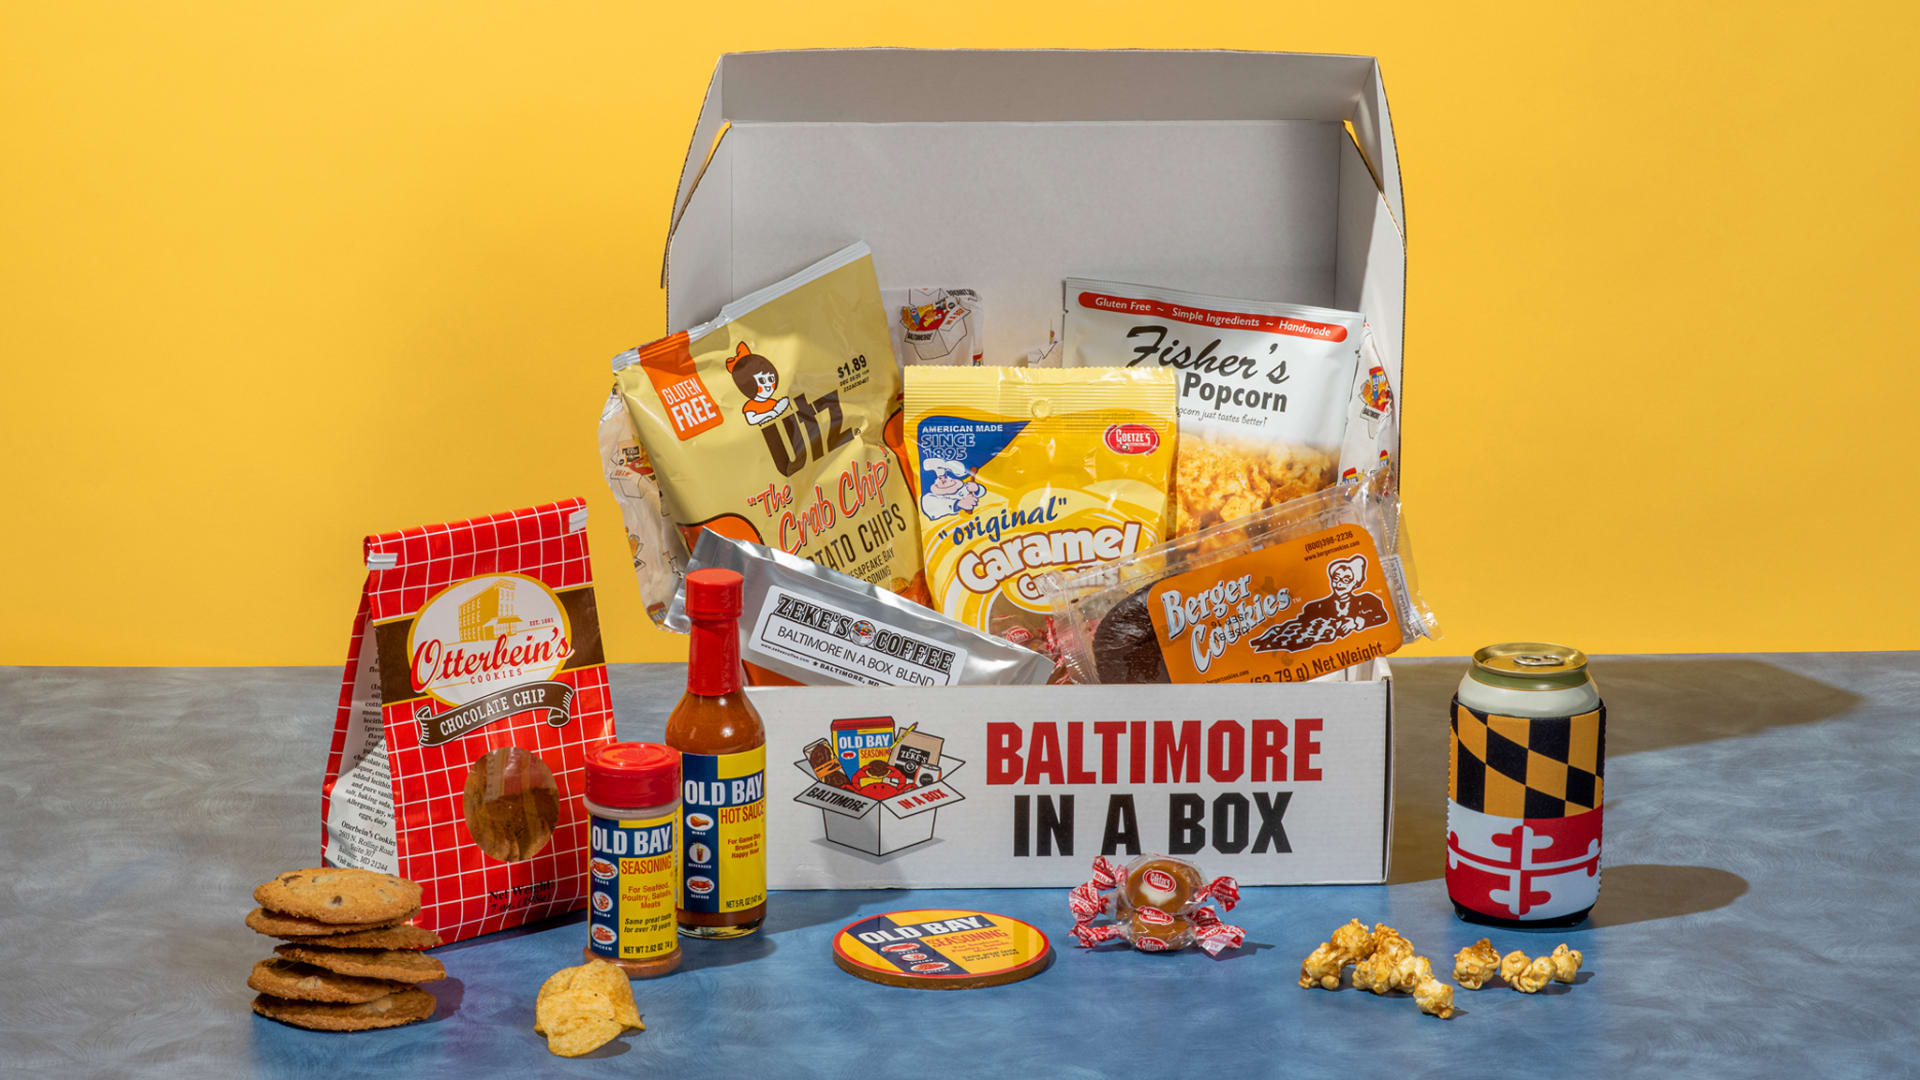 Meet the Care-Package Company That's Boxing Up Local Pride in Baltimore